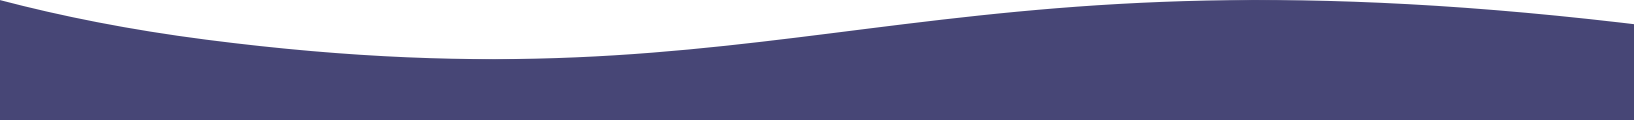 A curved purple and light blue background